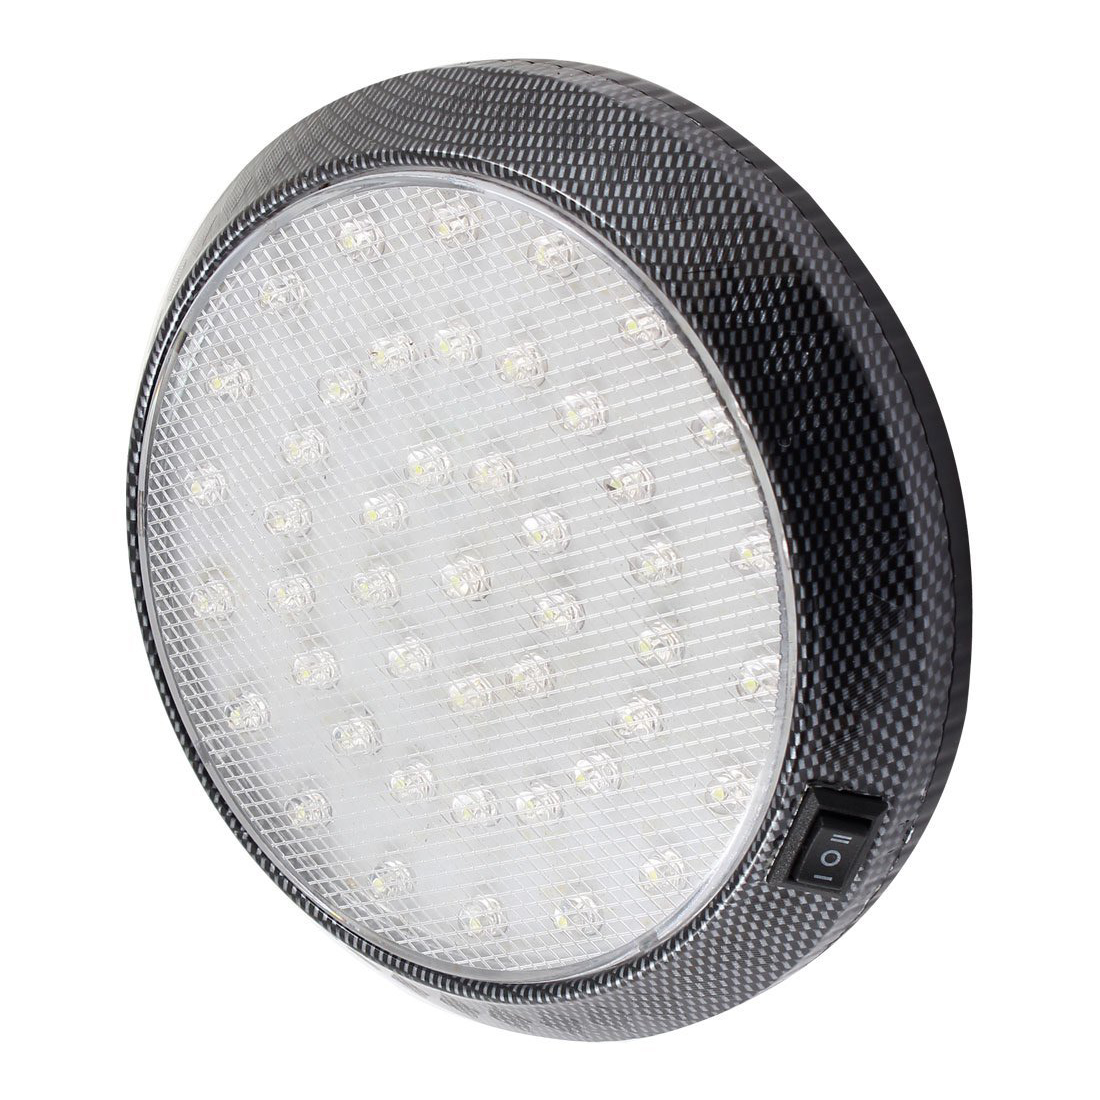 DC 12V Car Vehicle White 46 LED Dome Roof Ceiling Interior